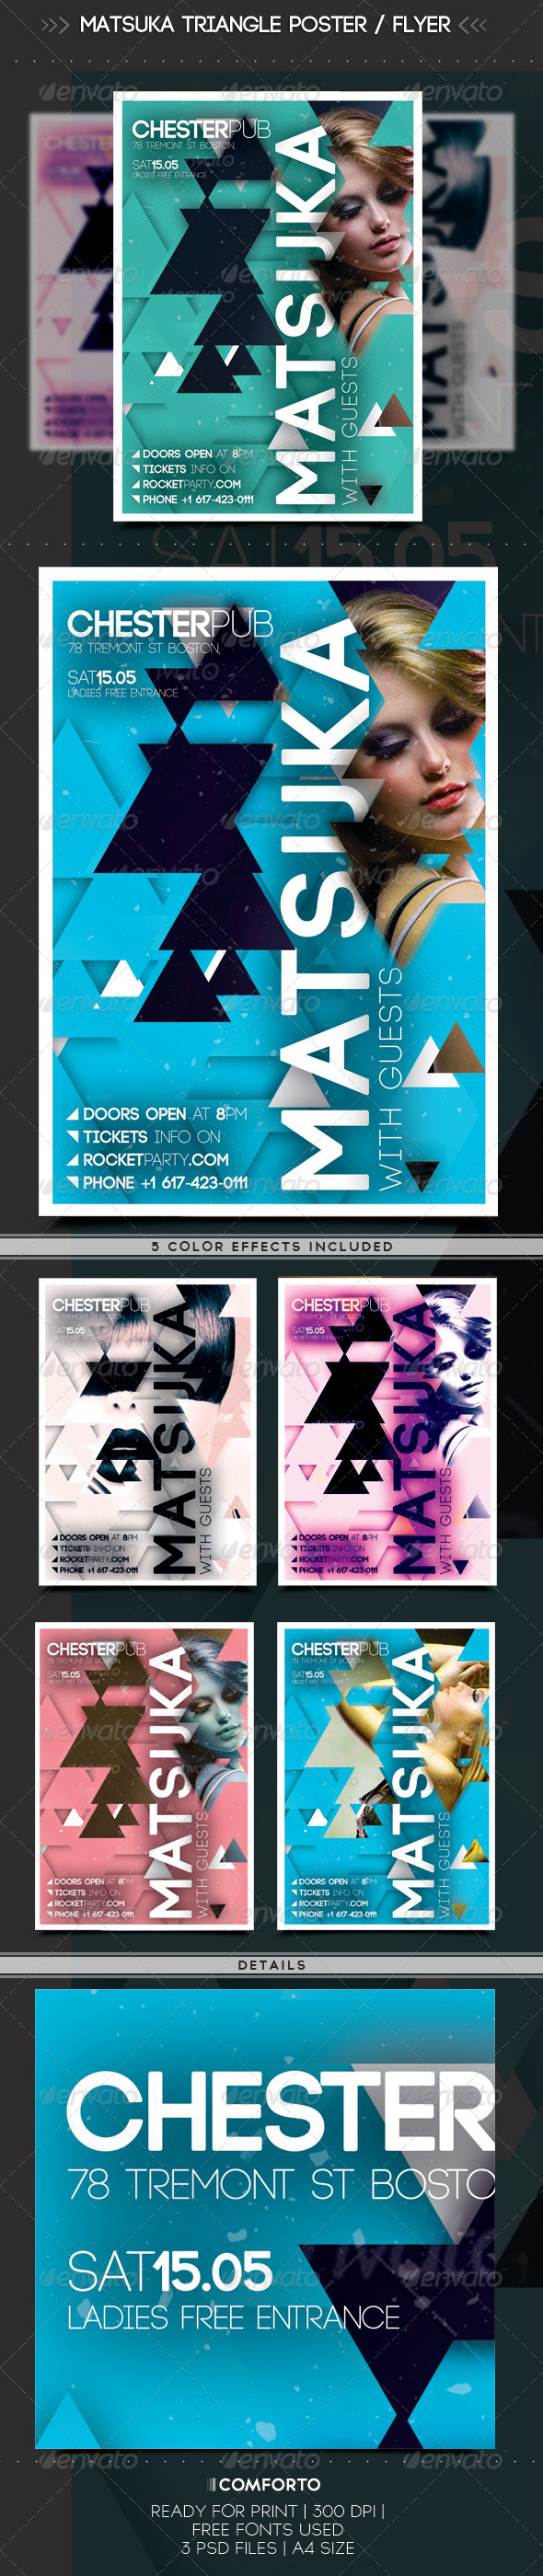 GraphicRiver Matsuka Triangle Poster Flyer 7336102